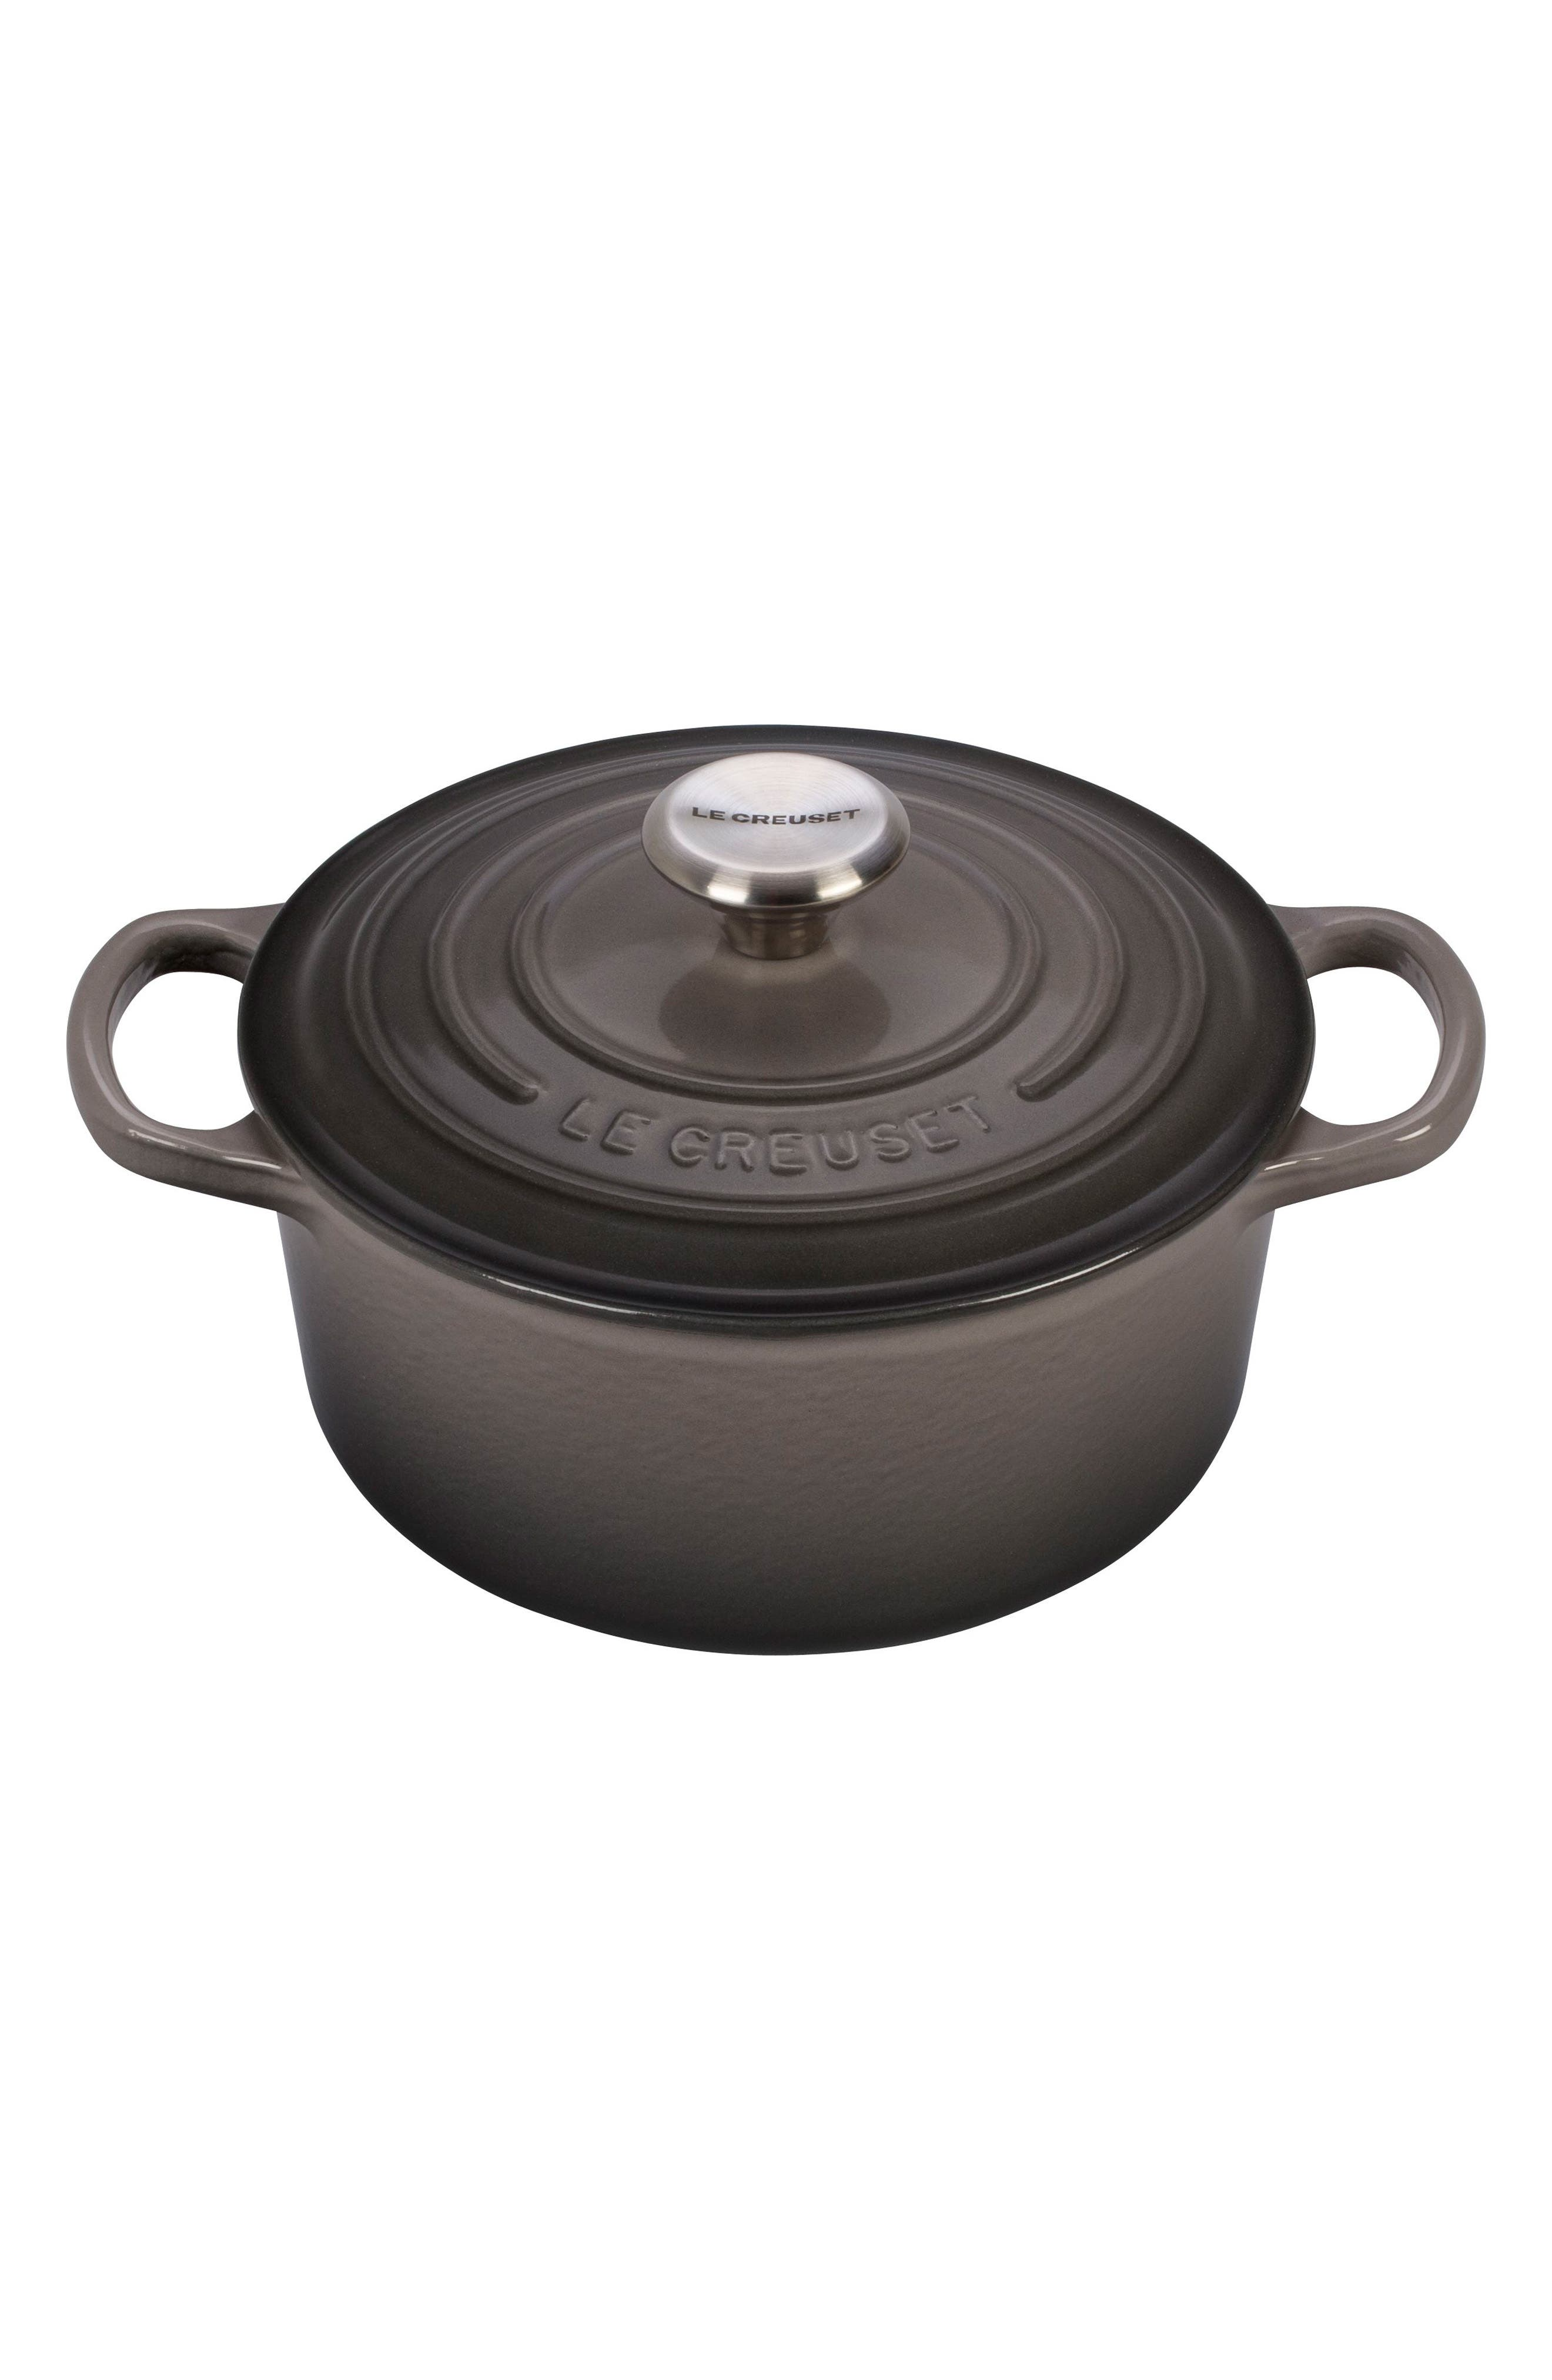 Signature 2-Quart Oval Enamel Cast Iron French/Dutch Oven,                             Main thumbnail 1, color,                             Oyster